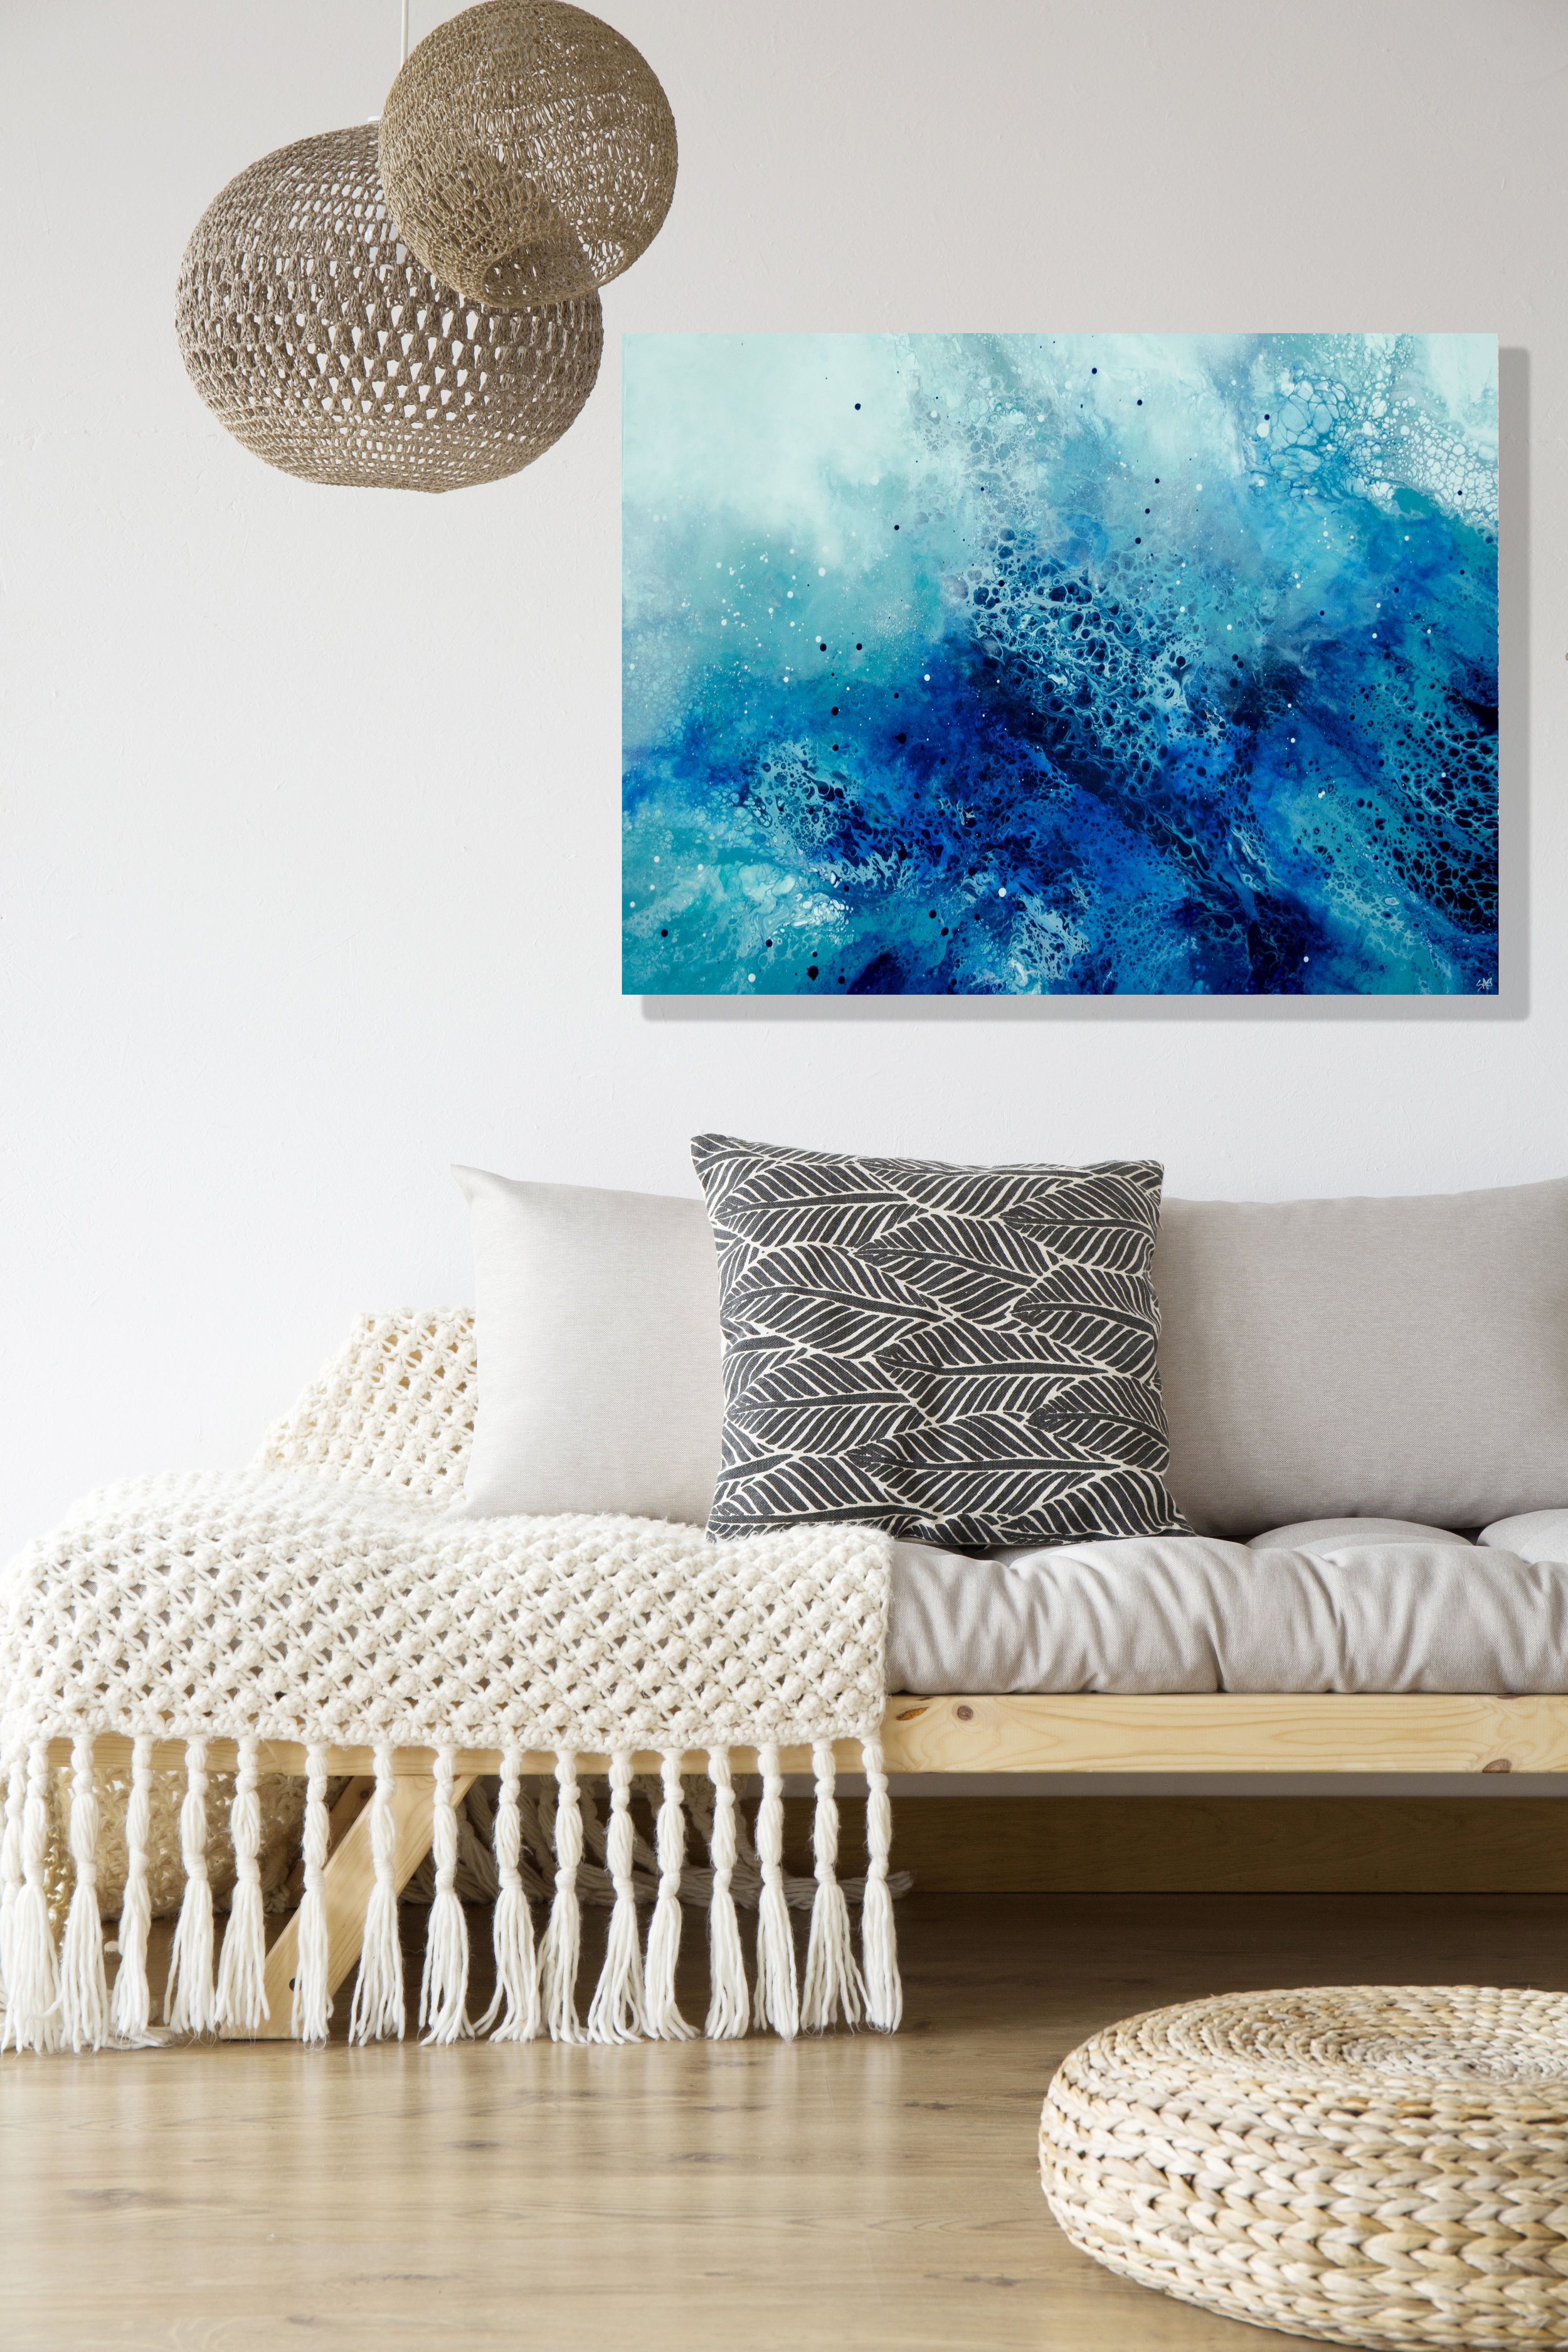 Zemyna/ 2019/ 24x36x1.25/Fluid Acrylic and Atlantic Ocean Water on Canvas/ for sale/     CONTACT LAGUNA ART GALLERY